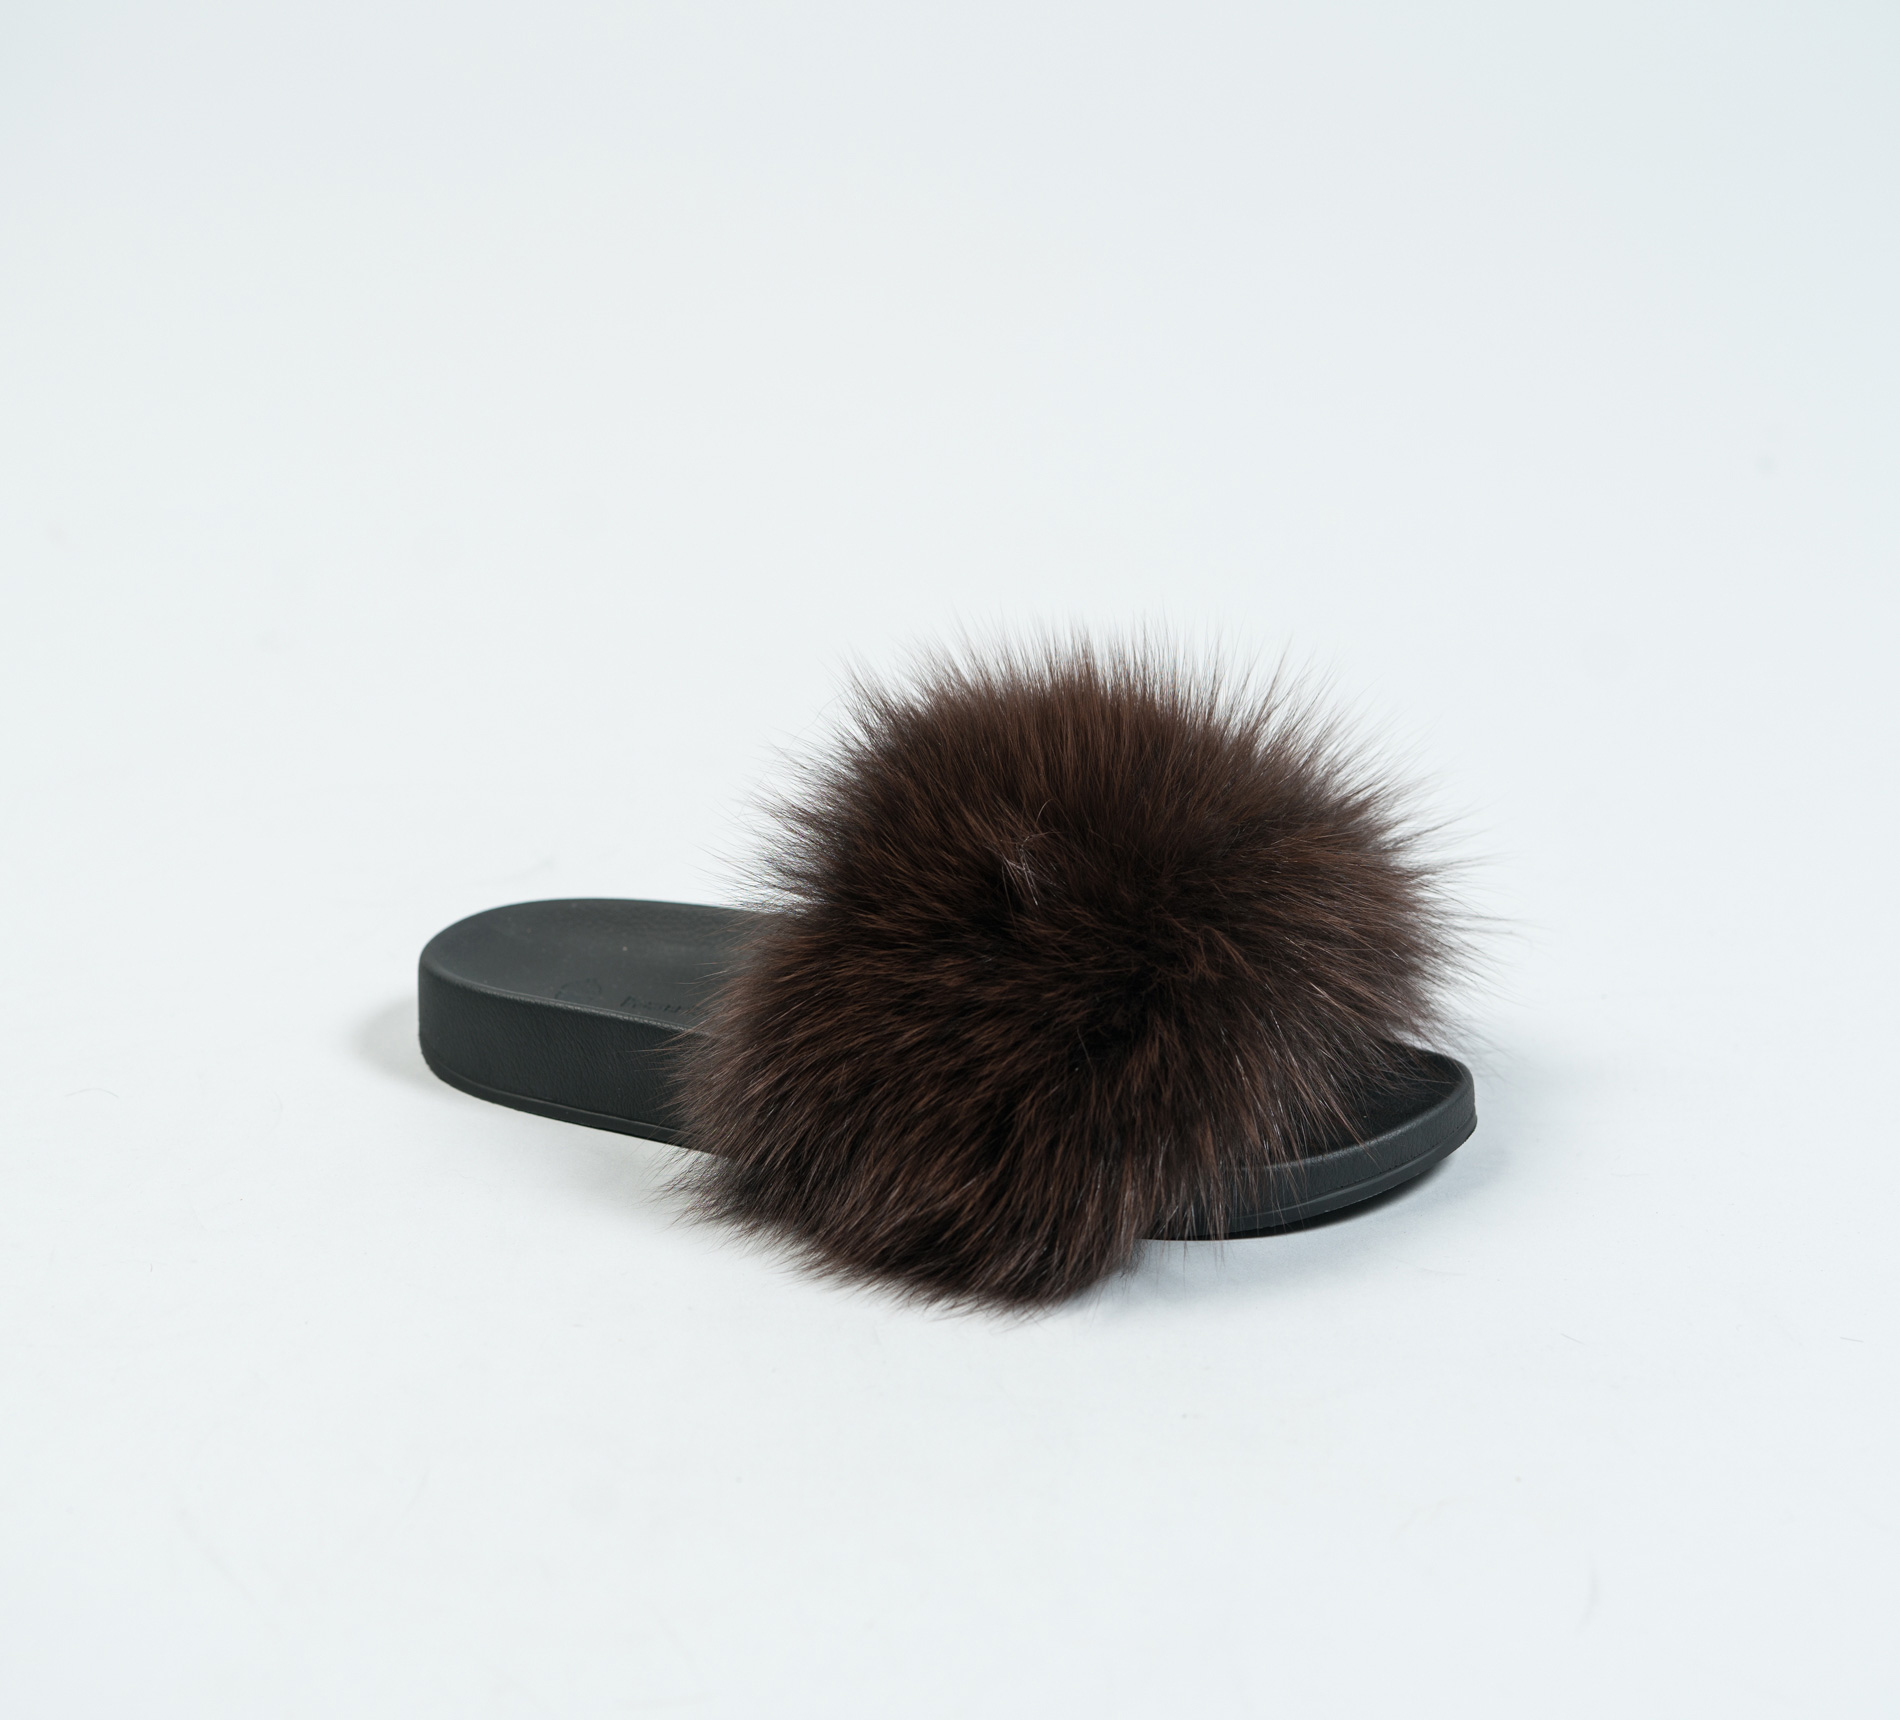 7f3700d5dff2 Mahogany Fur Slides. Made of 100% Real Fur. All Sizes Available.